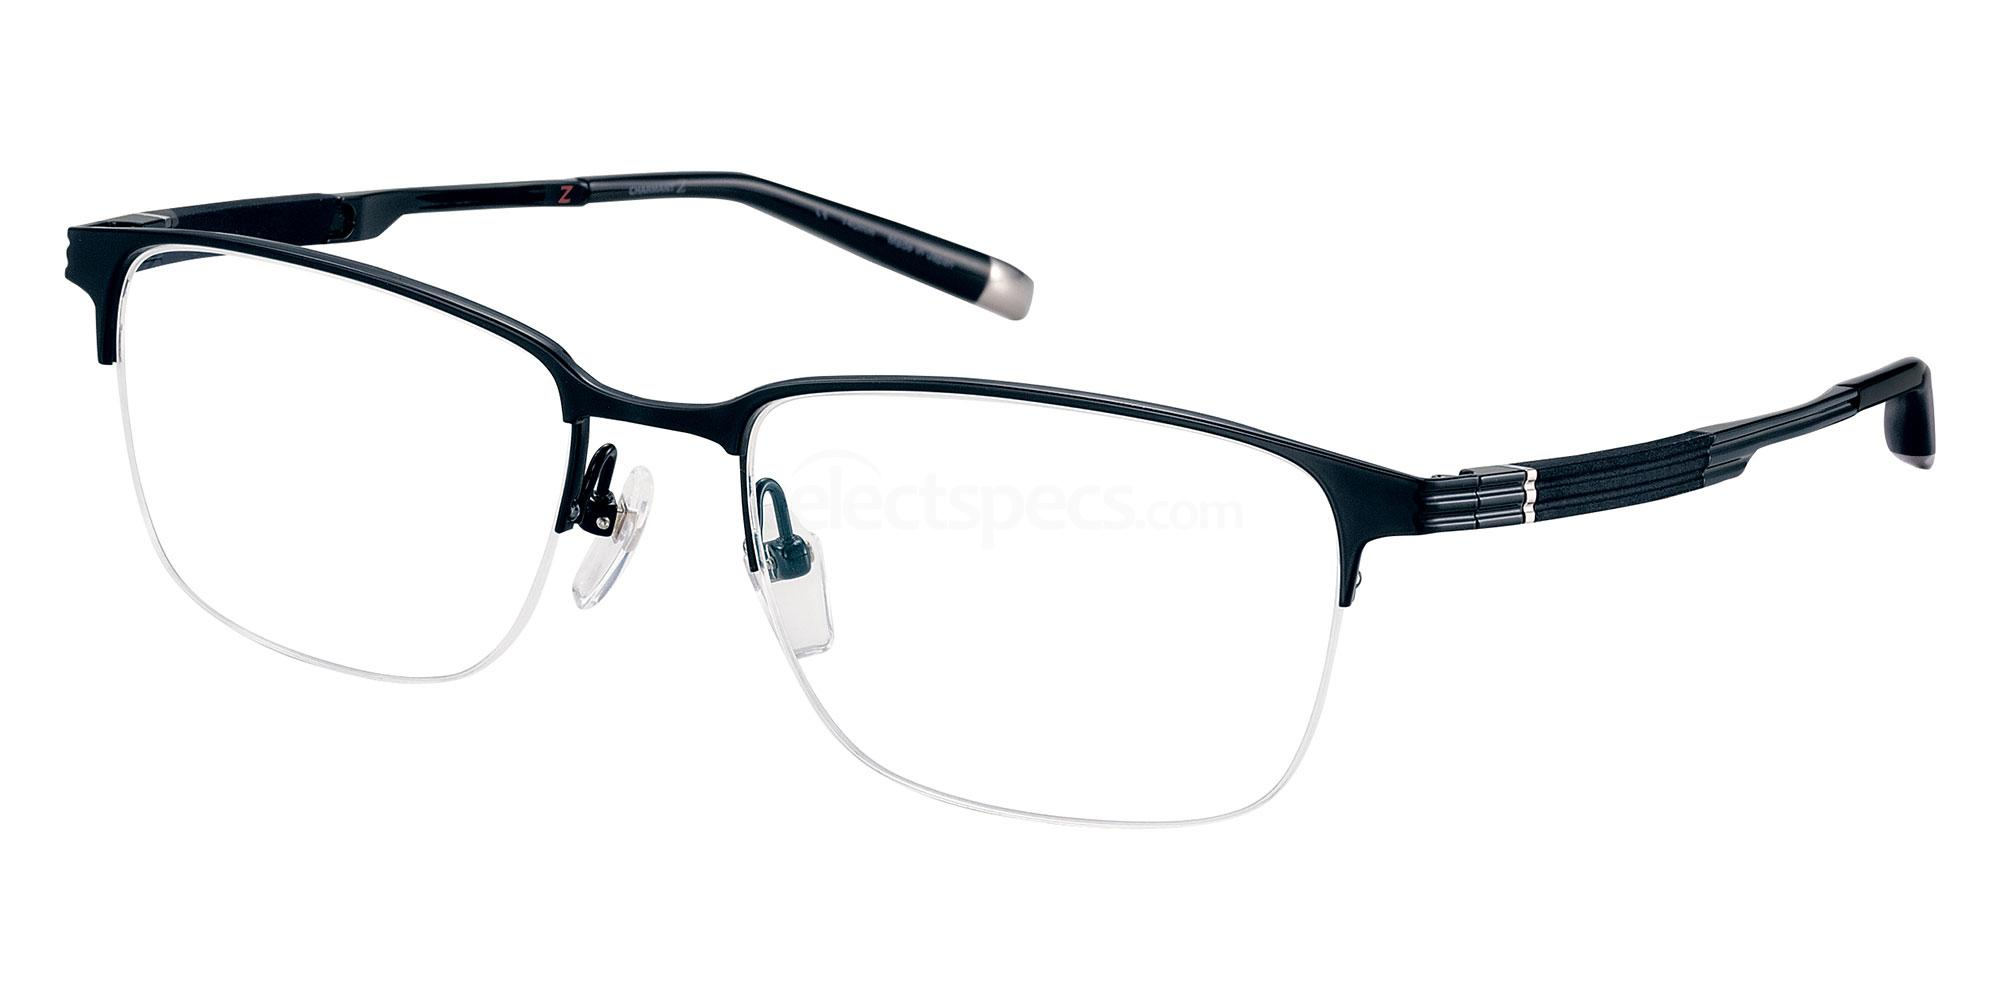 BK ZT19876 Glasses, Charmant Z